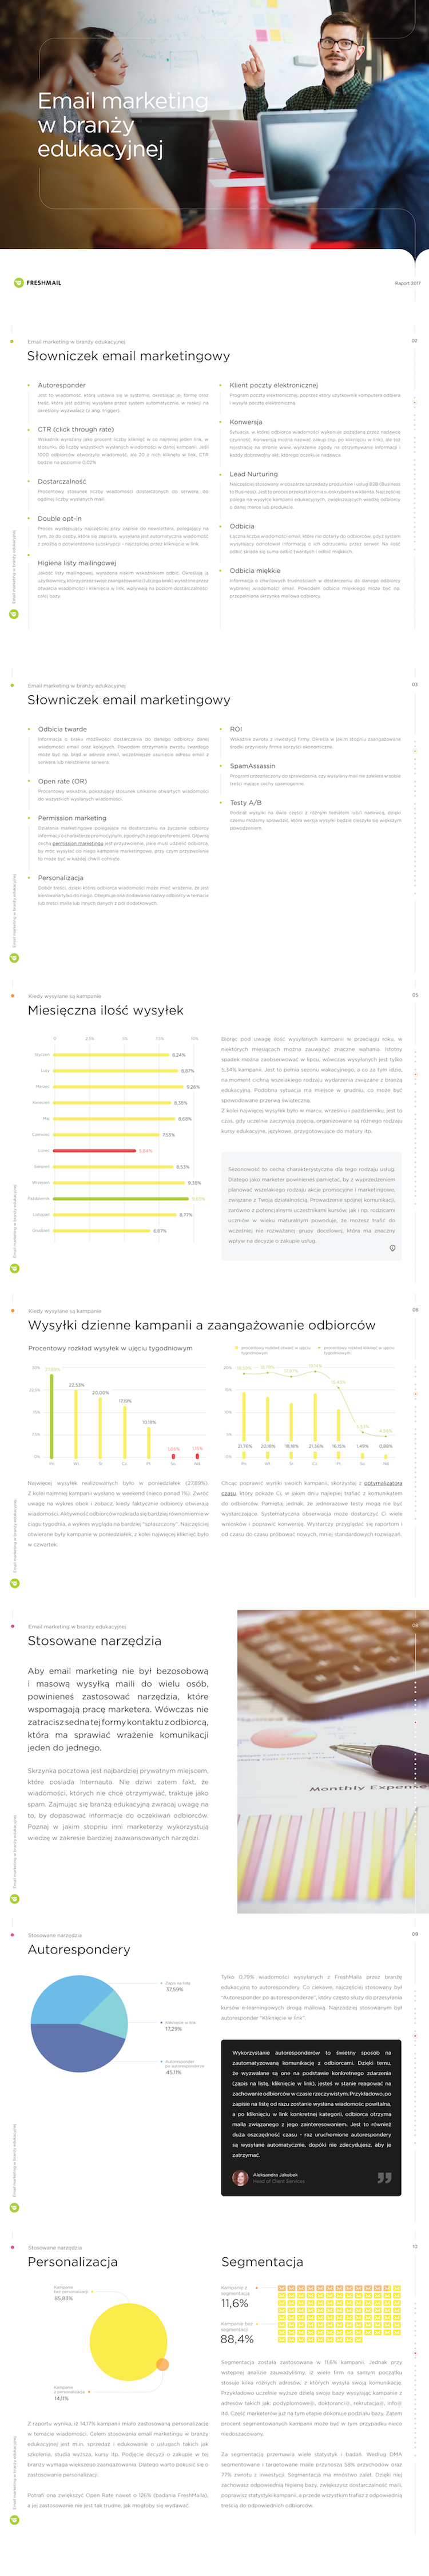 fm_infografika_email_marketing_w_liczbach_2017_1_640px